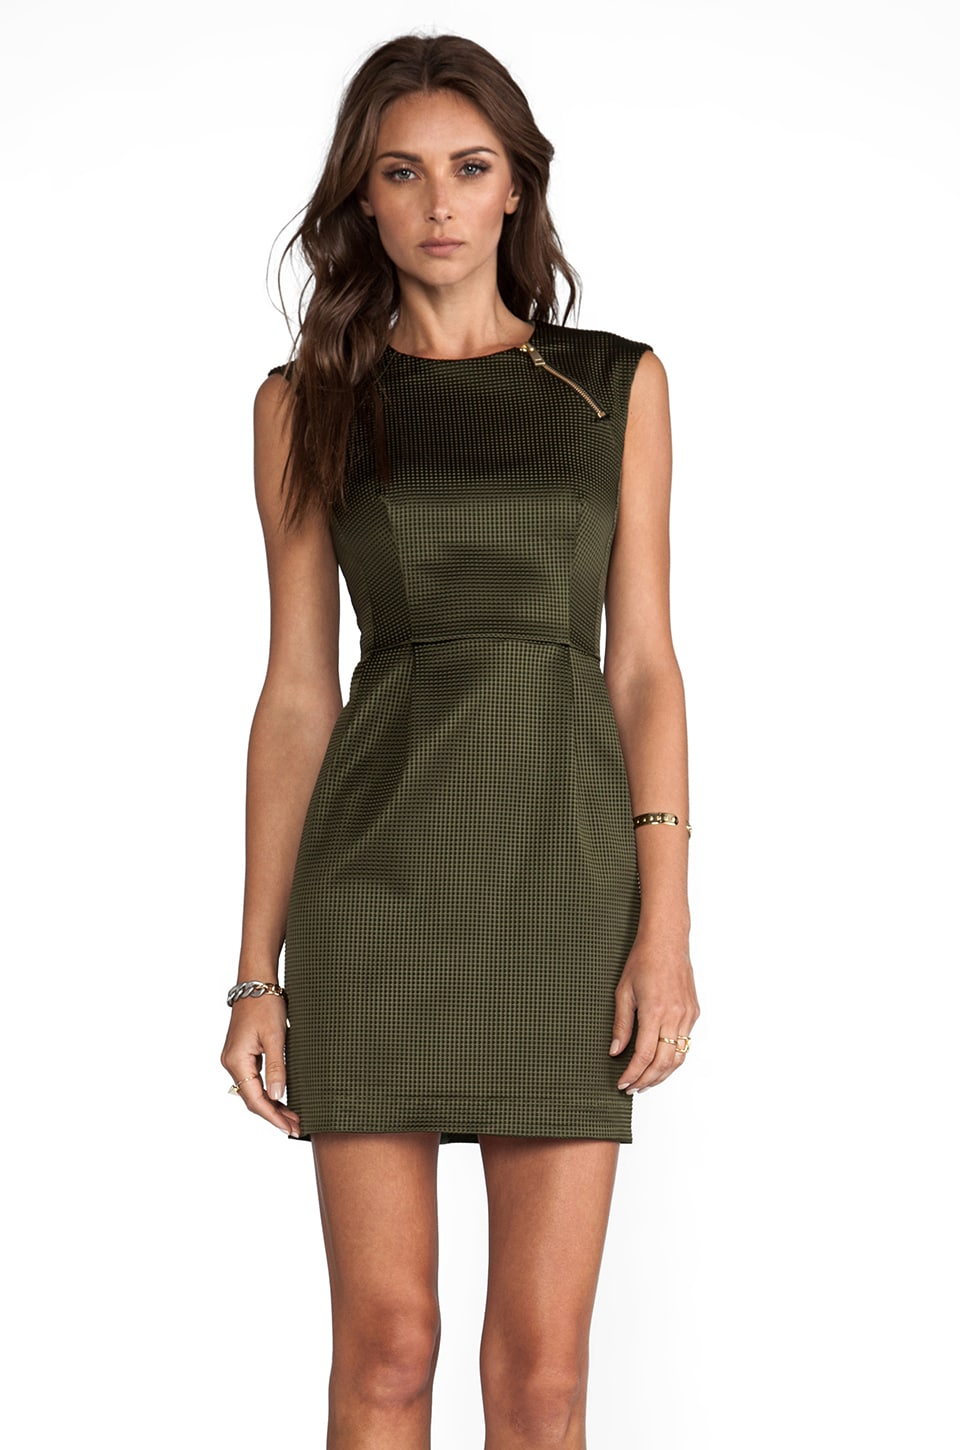 Nanette Lepore Runway Martian Woven Dress in Olive